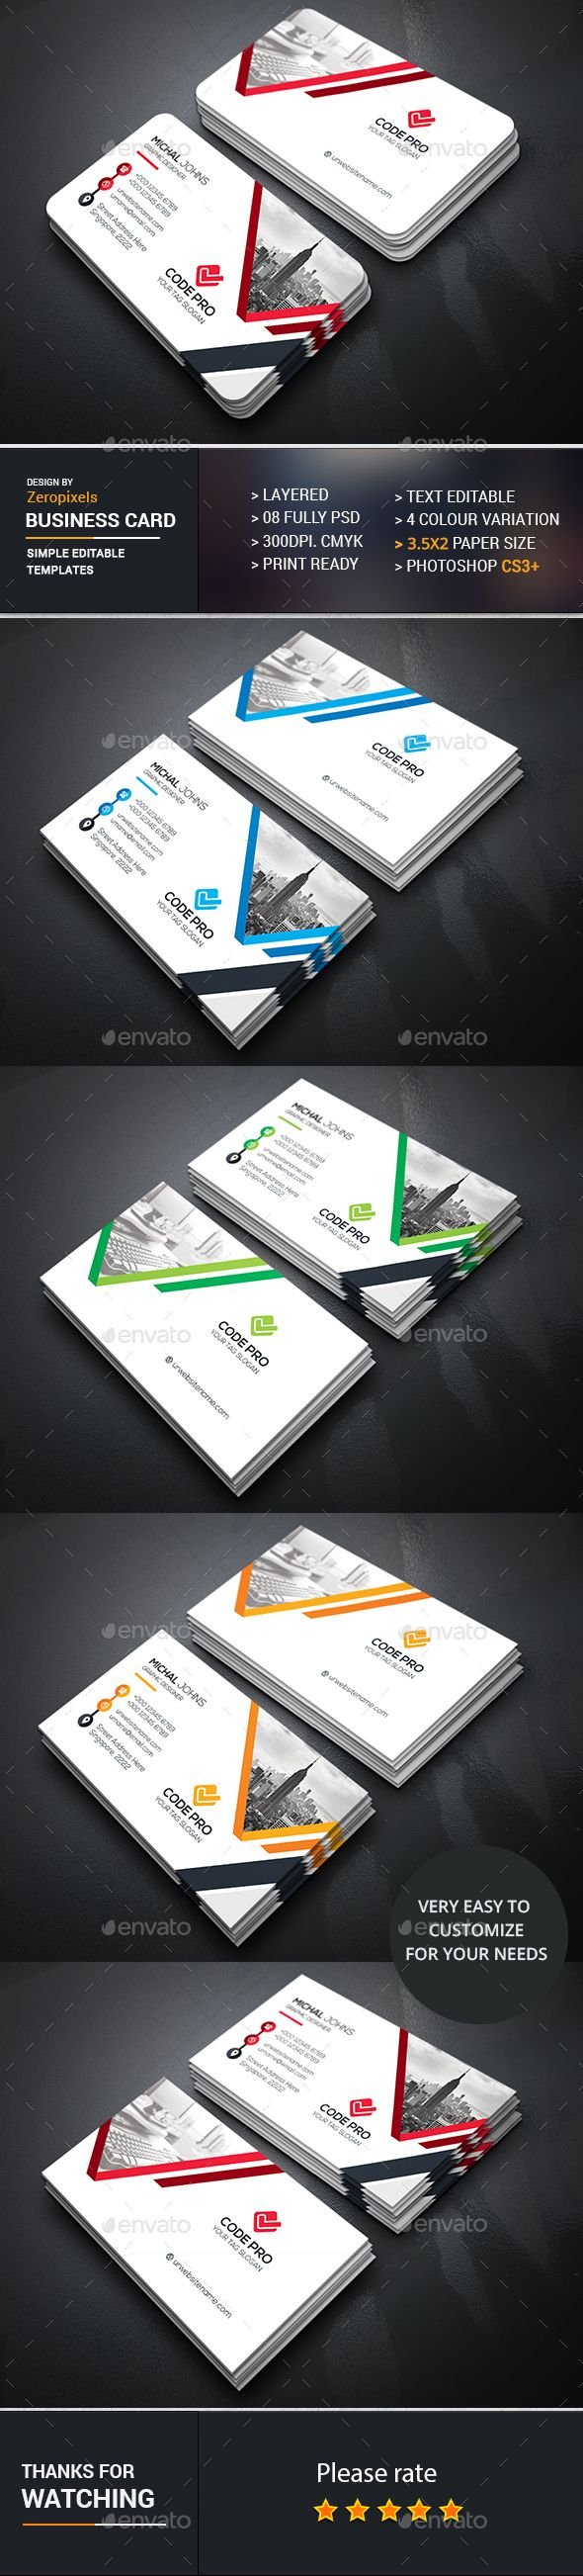 Business card design business cards template psd download here business card design business cards template psd download here httpsgraphicriveritembusiness card16939701srank171refyinkira pinterest reheart Gallery